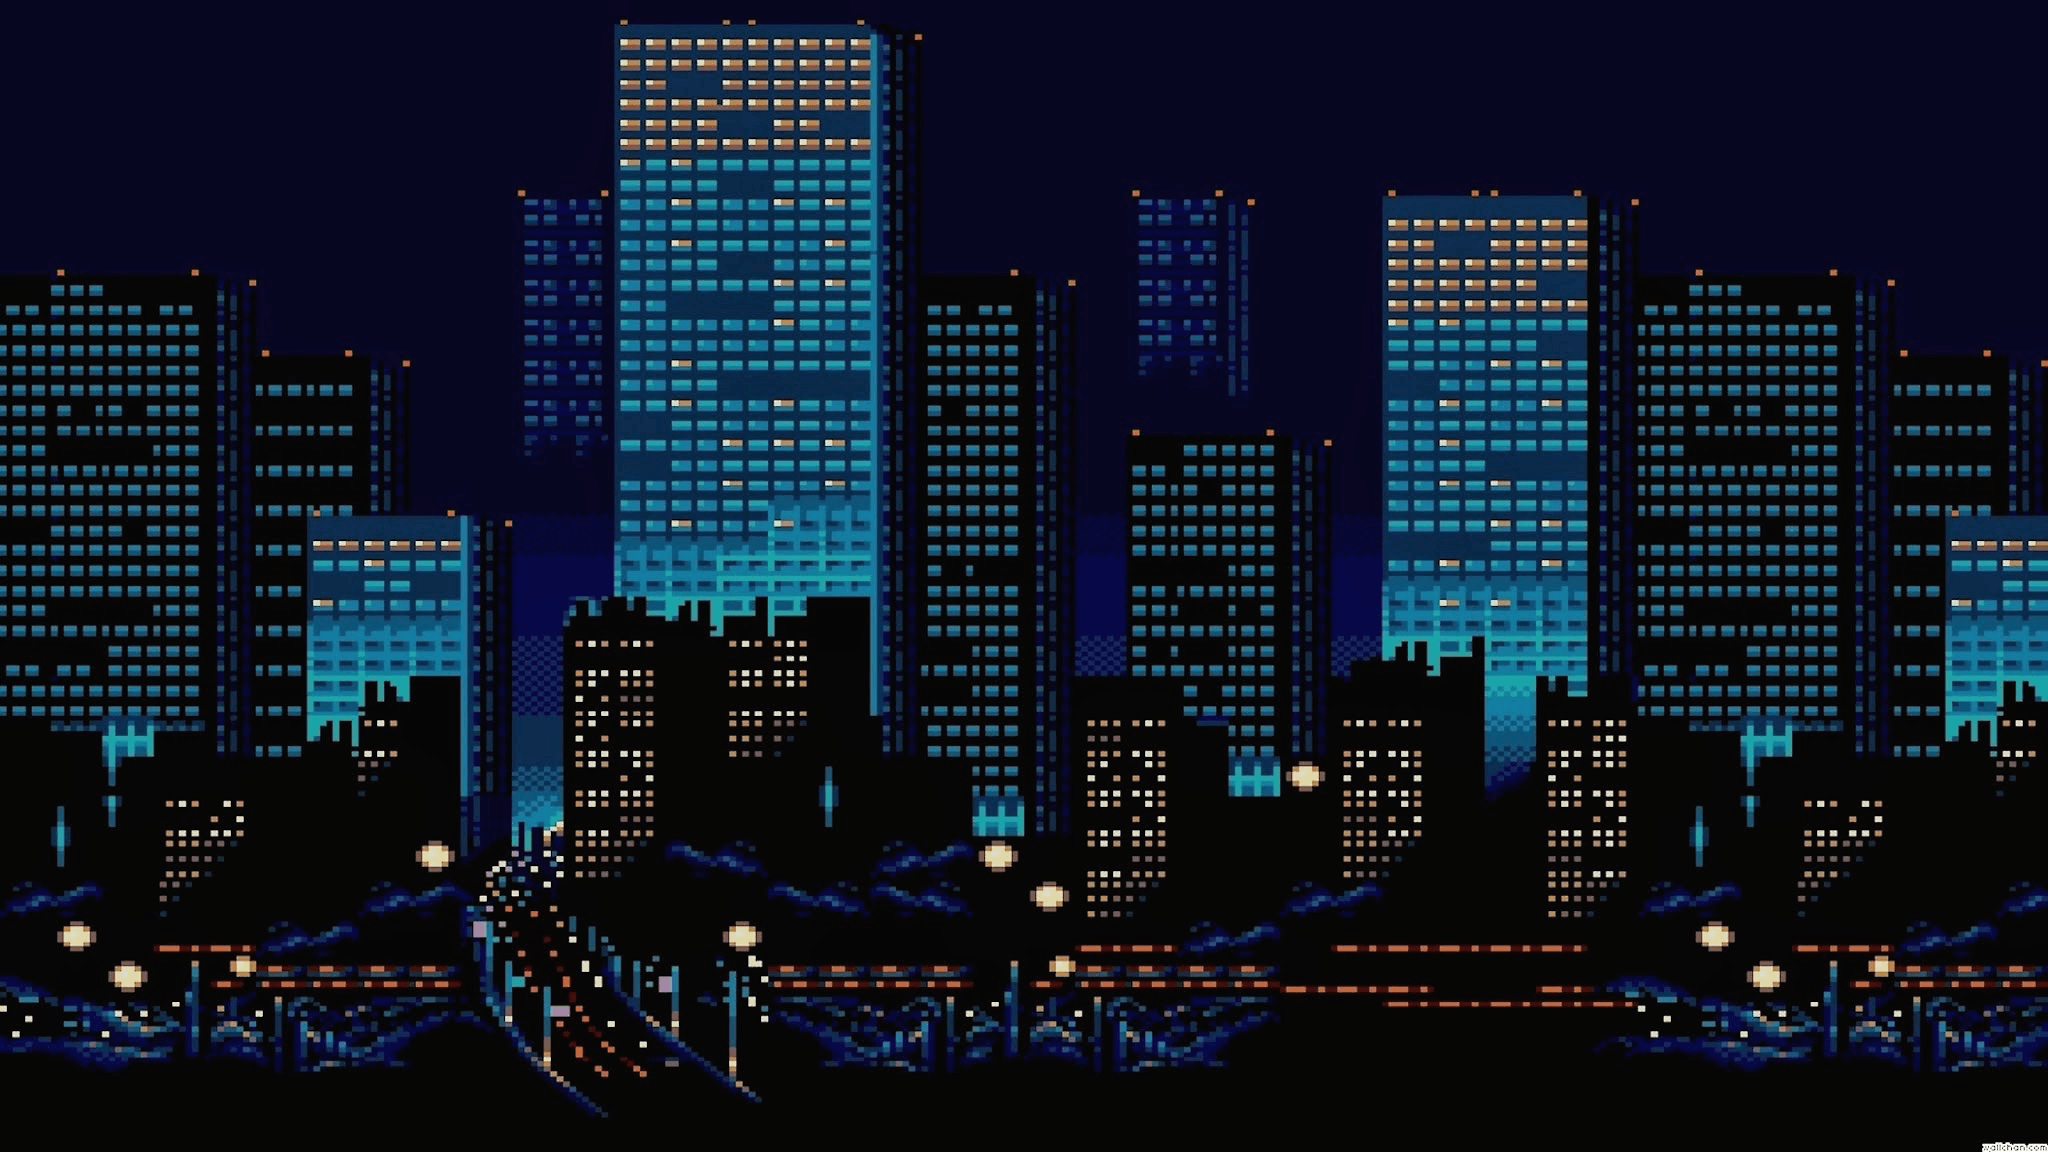 80s Neon City Wallpapers Top Free 80s Neon City Backgrounds Wallpaperaccess